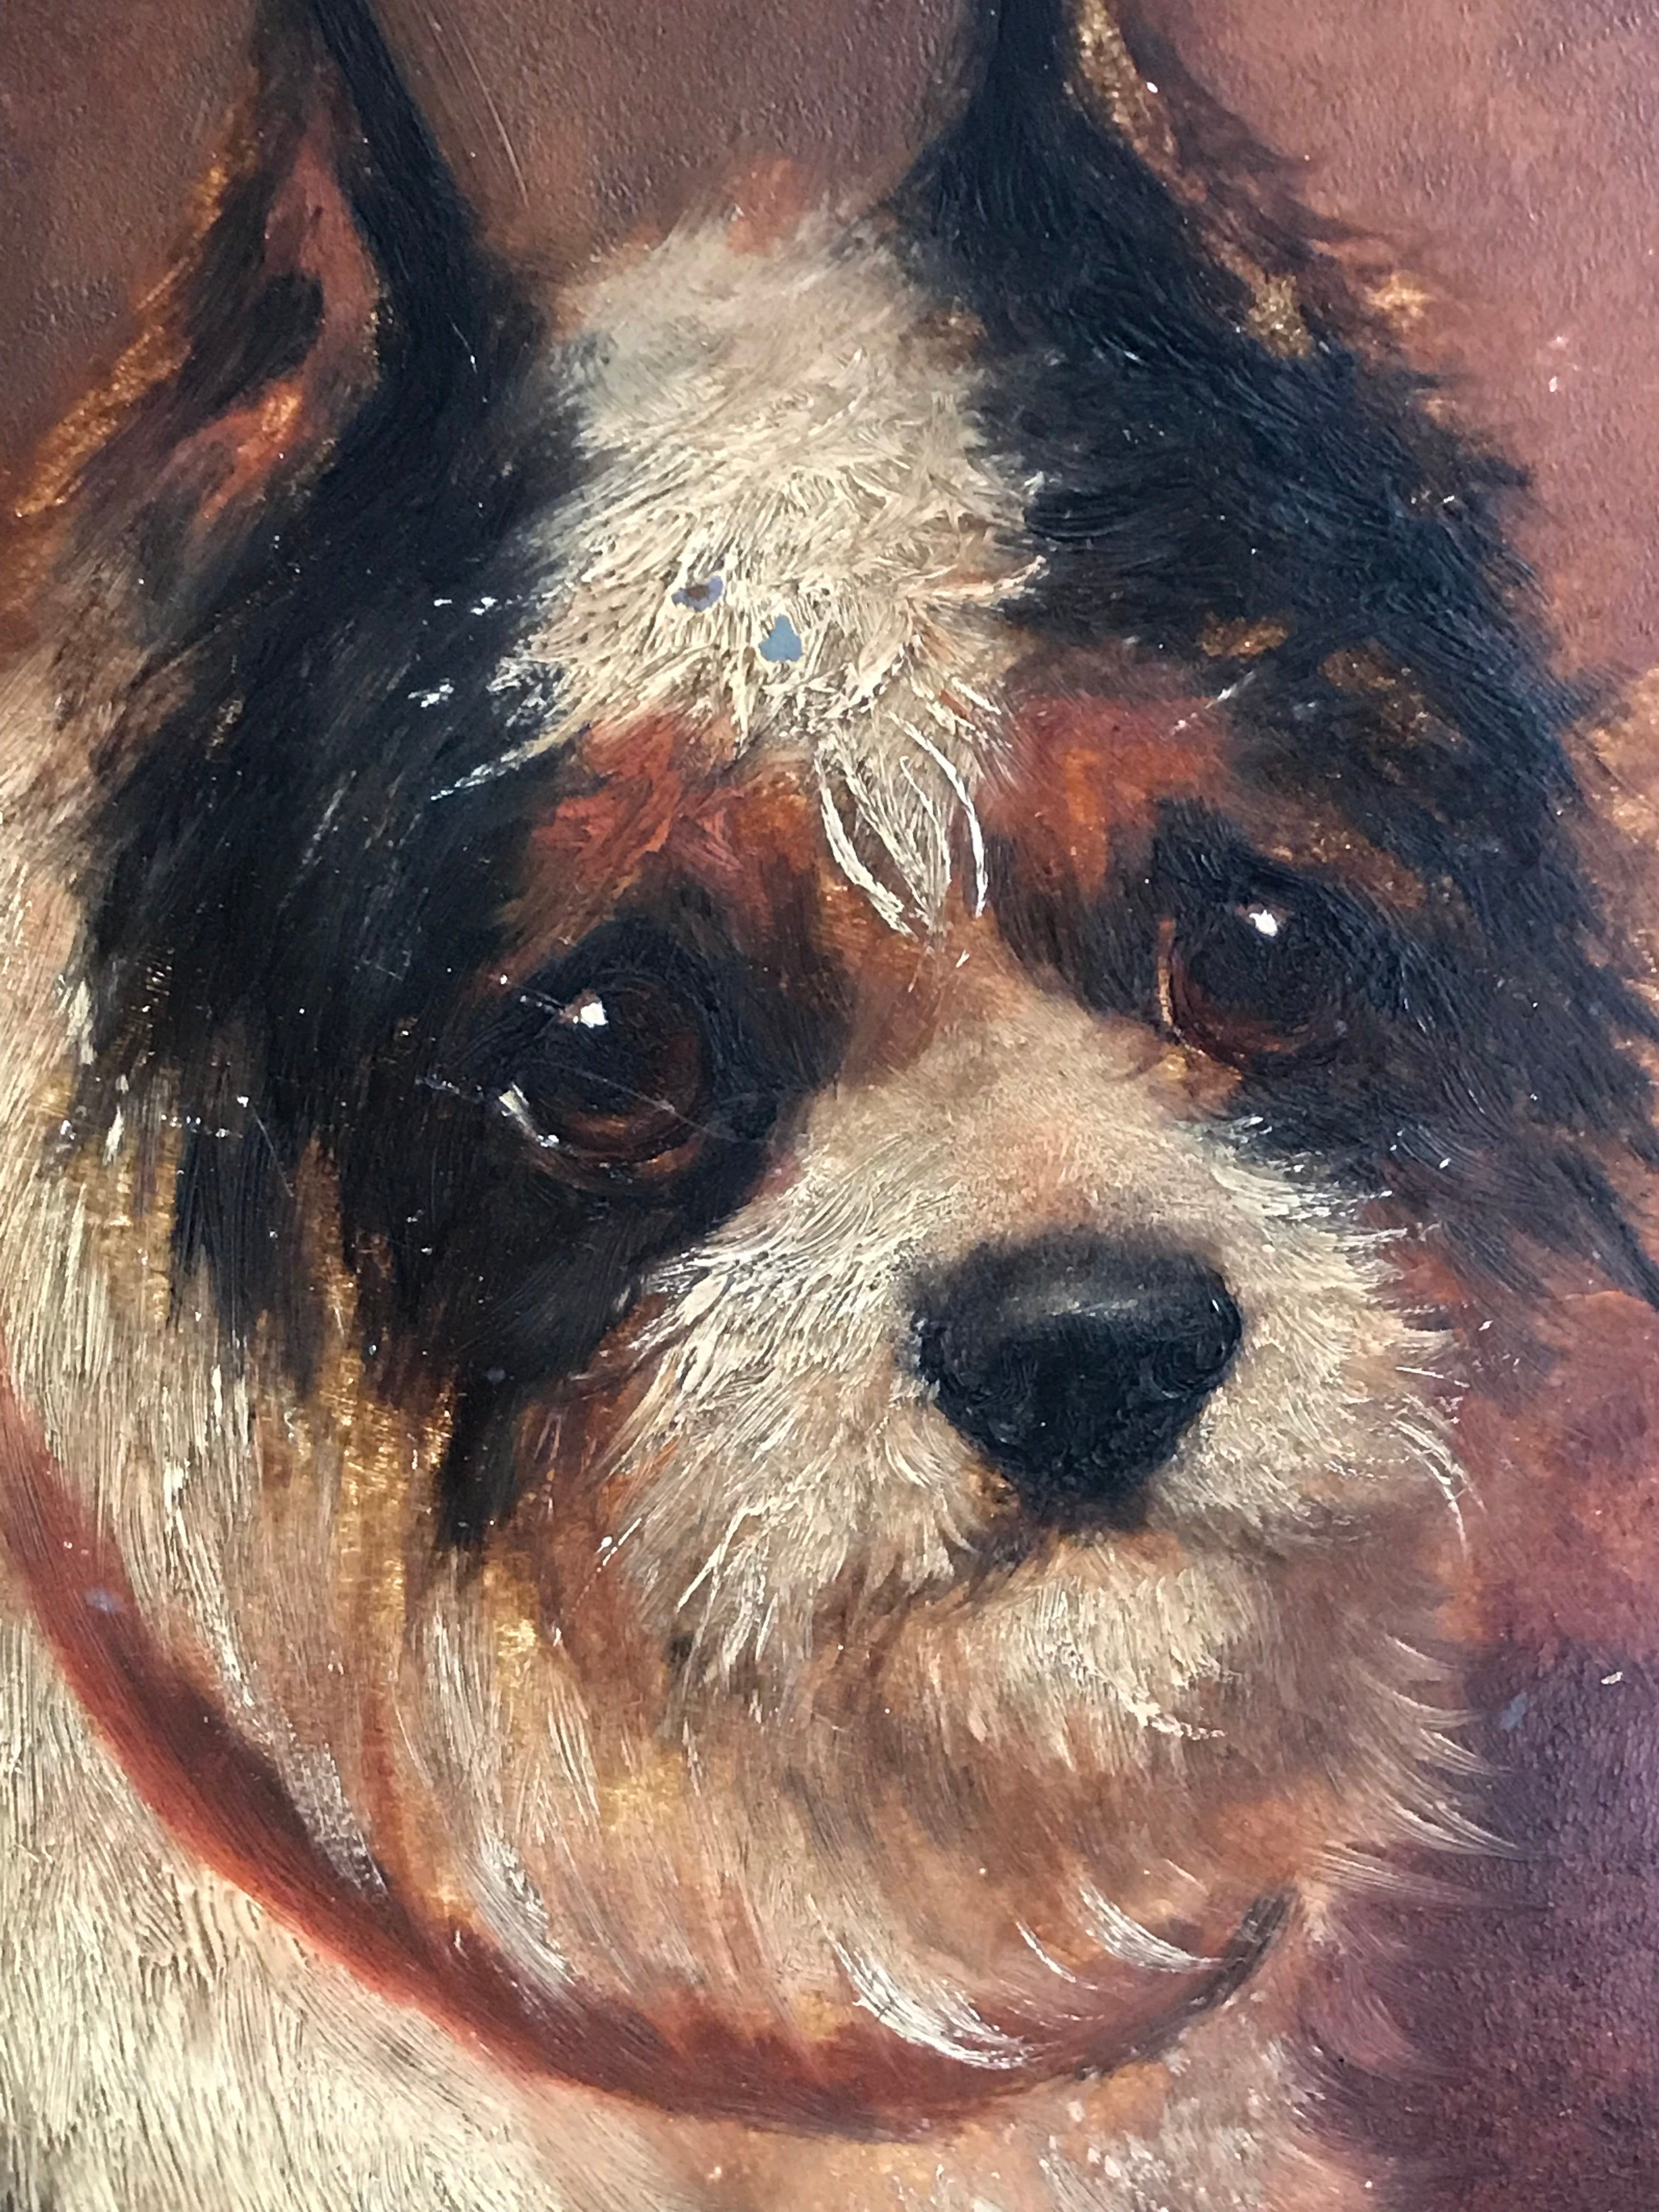 02fb6fa99e27 Unknown - The Terrier Dog, 19th century English Oil Painting at 1stdibs